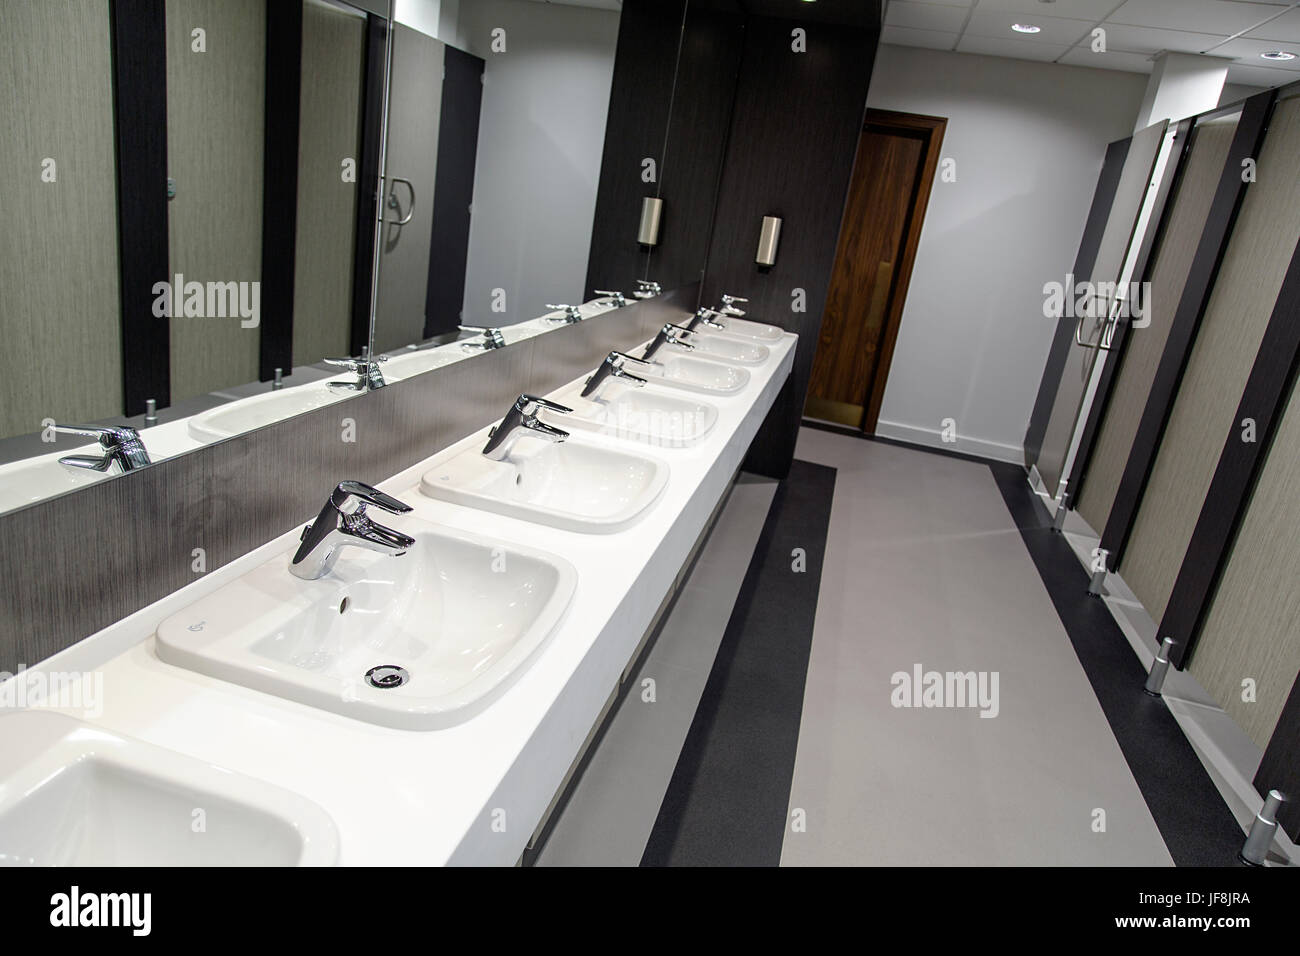 Salle De Bain Public ~ public bathroom photos public bathroom images alamy